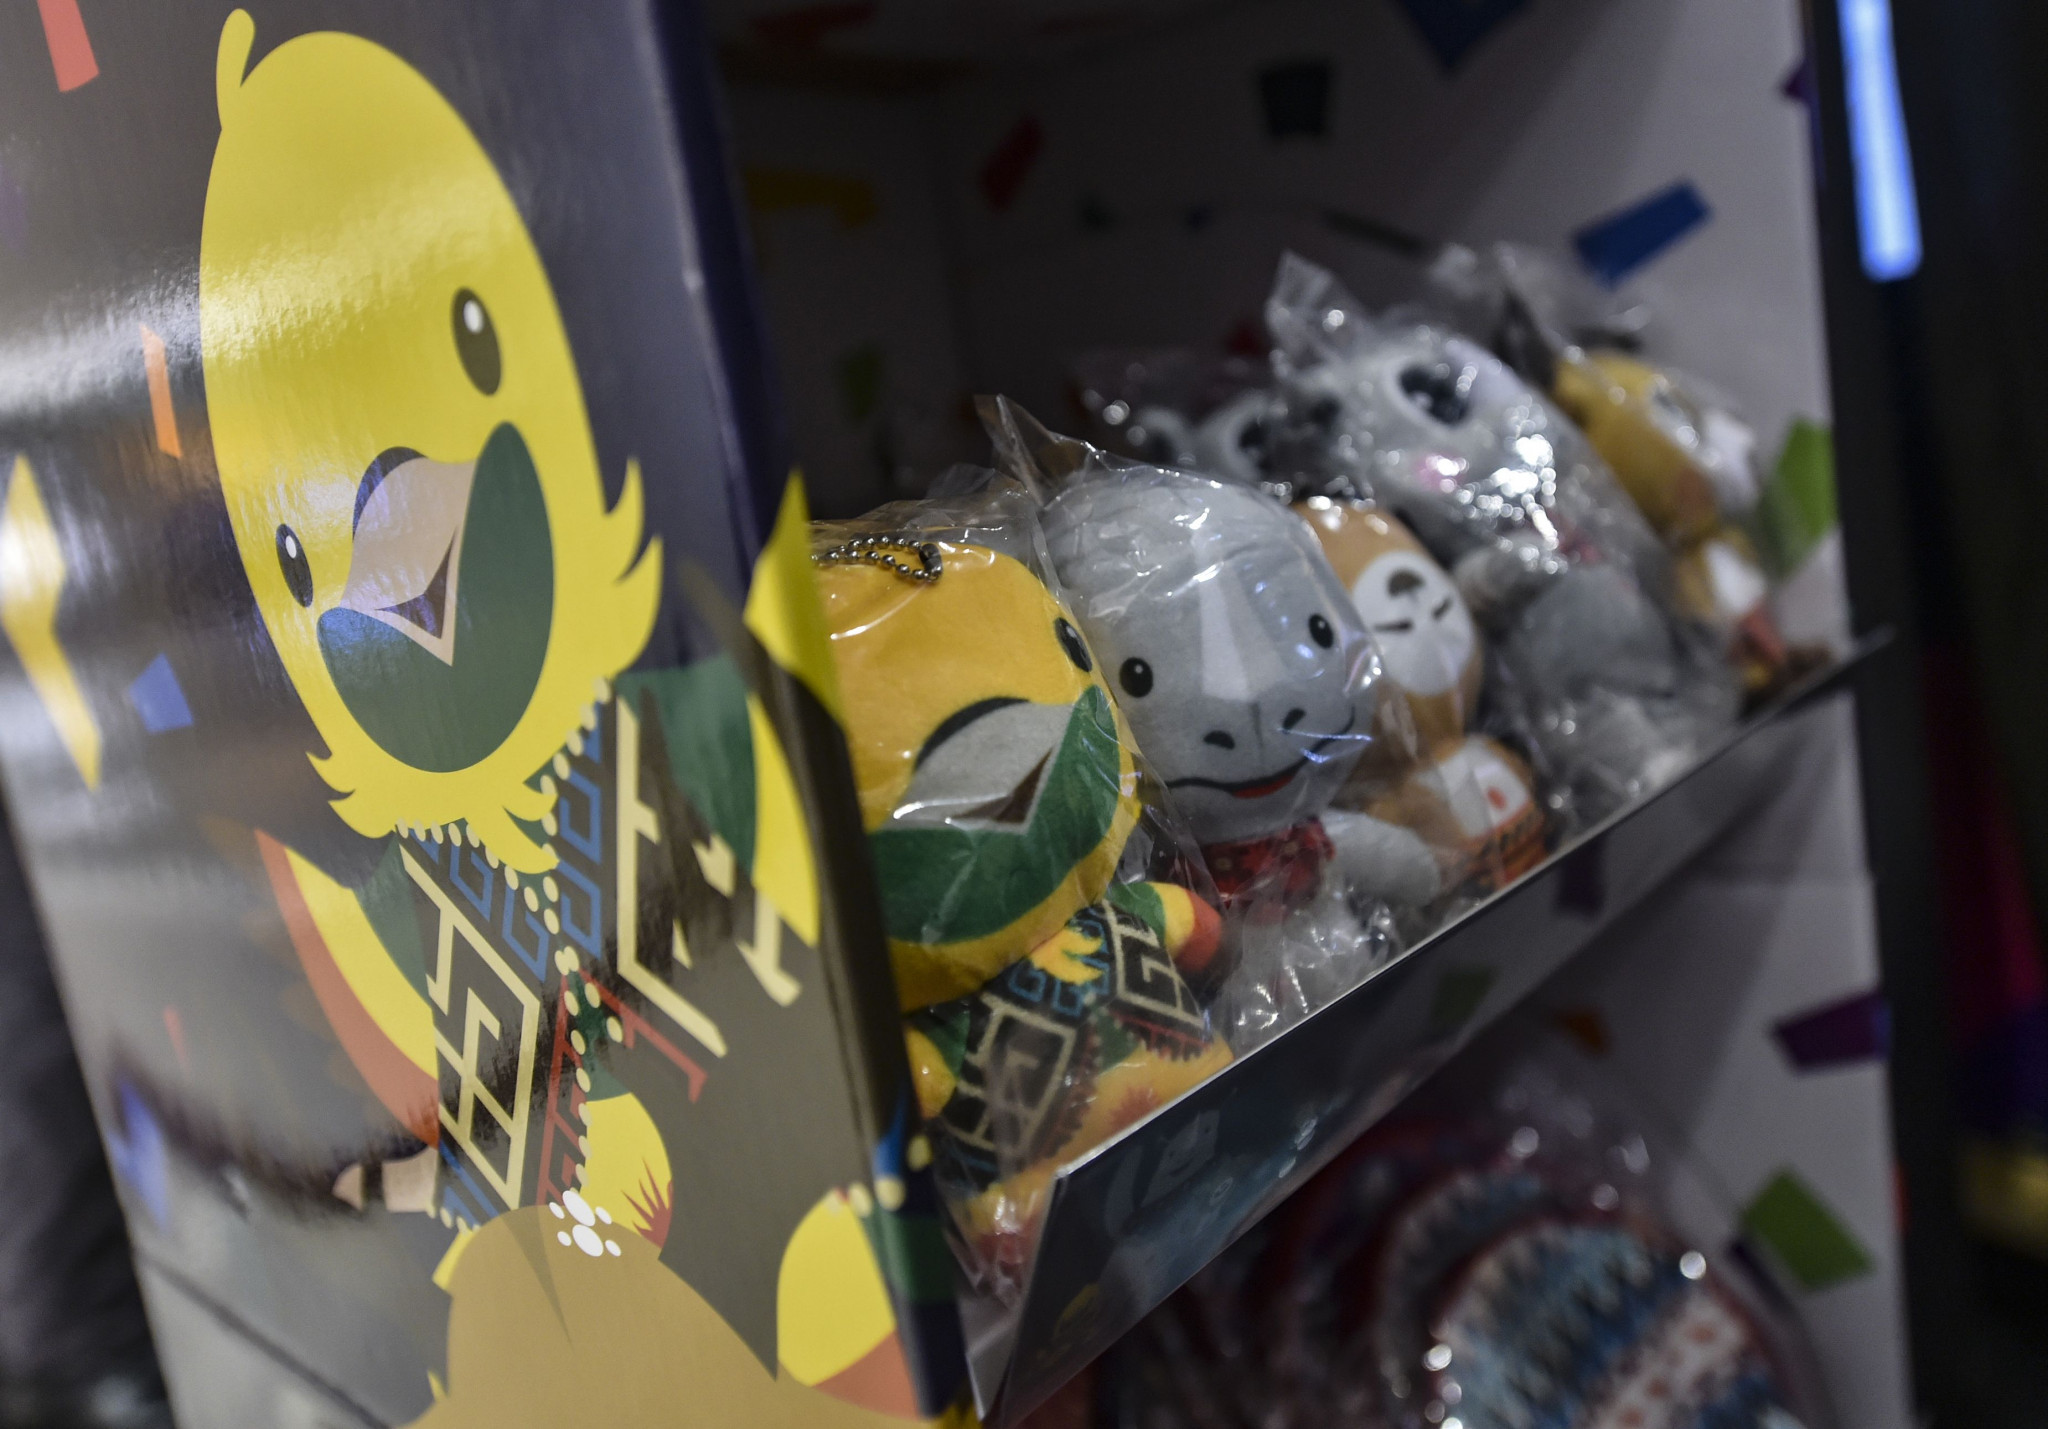 The launch of the merchandise for the 2018 Asian Games had been slightly delayed for quality control reasons ©Getty Images